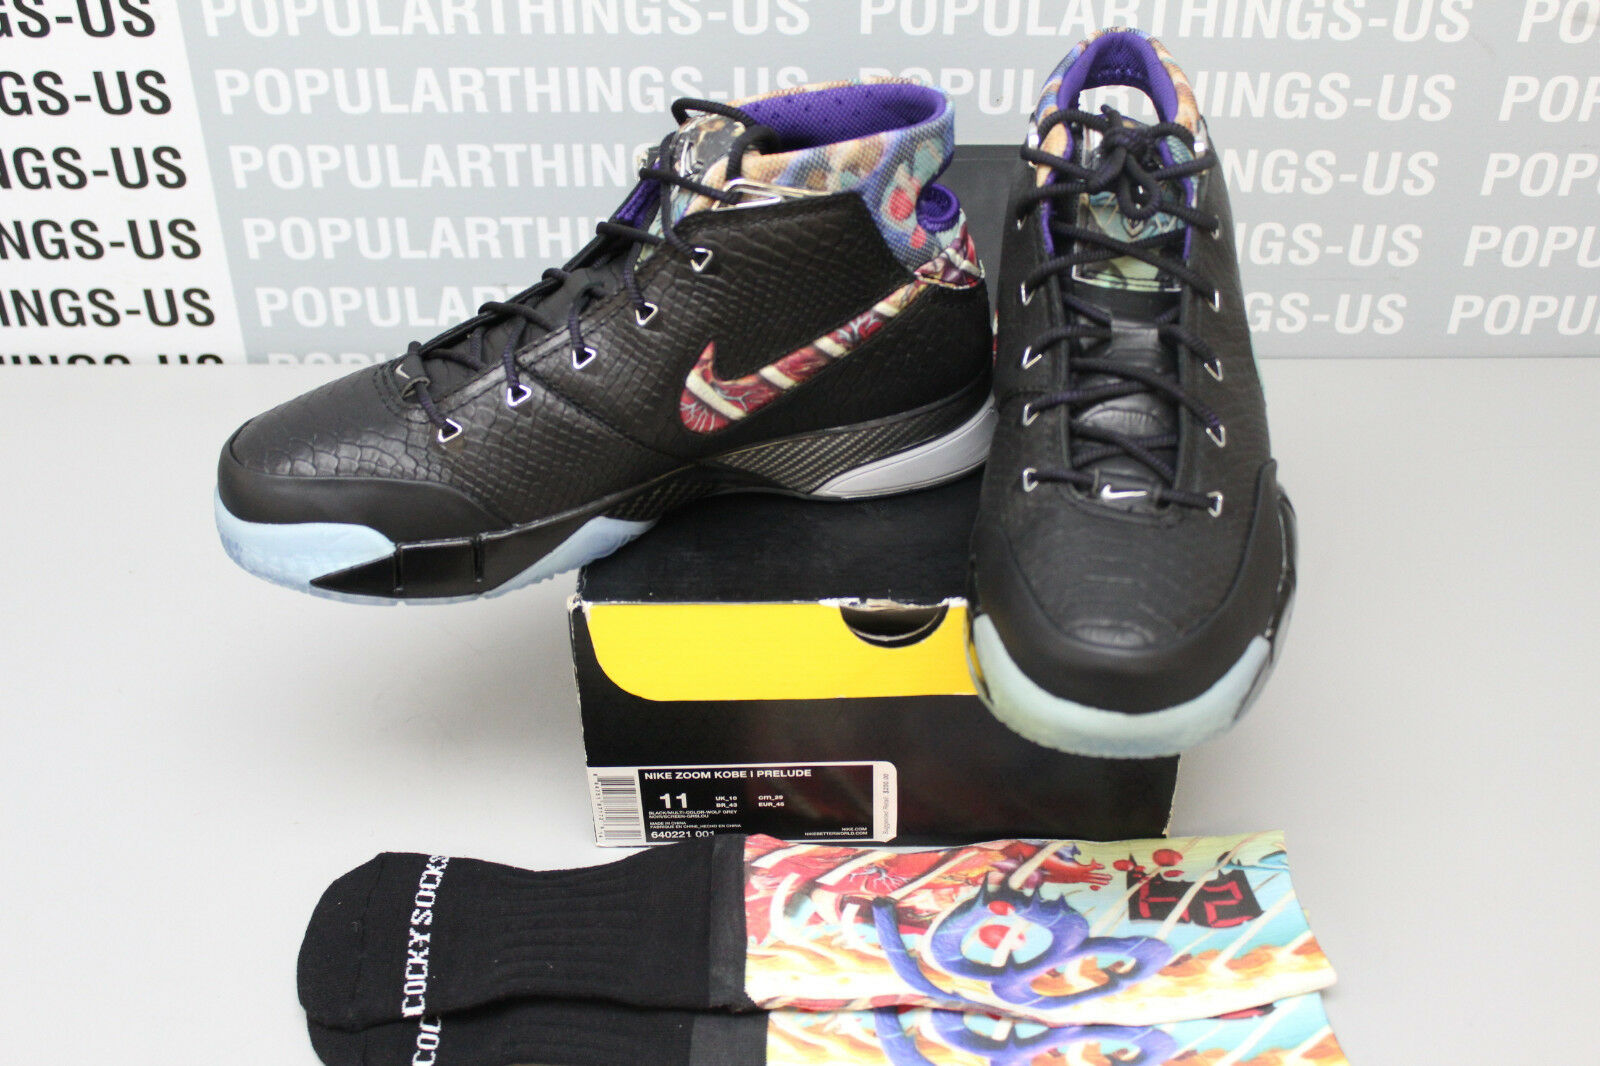 Nike Zoom Kobe I Prelude 640221 001 Sz 11 VNDS! Special limited time